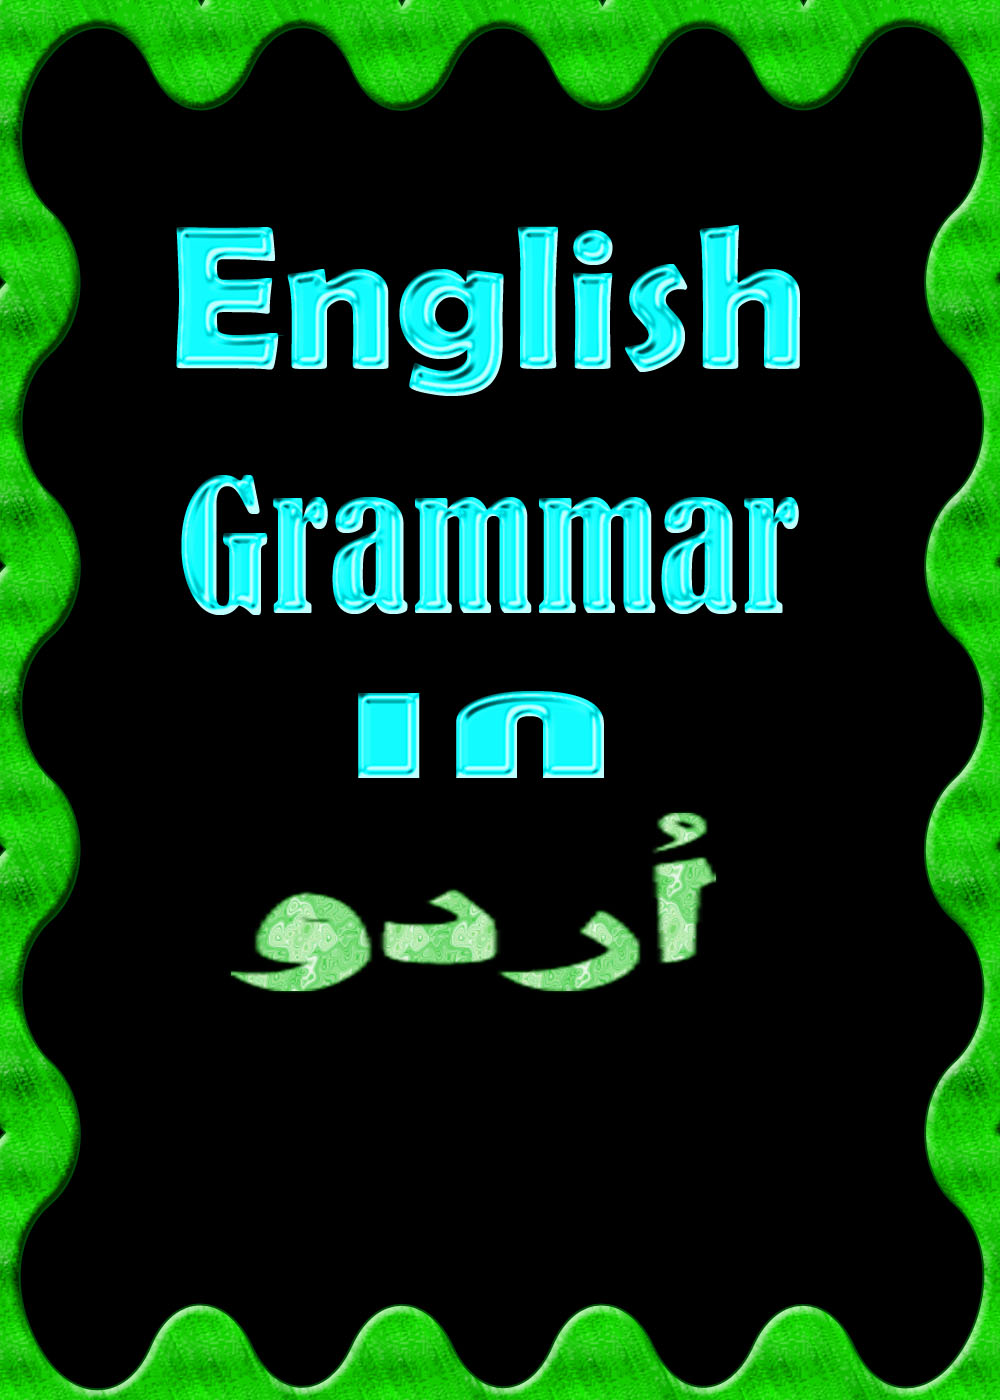 English Grammar Books In Urdu Pdf